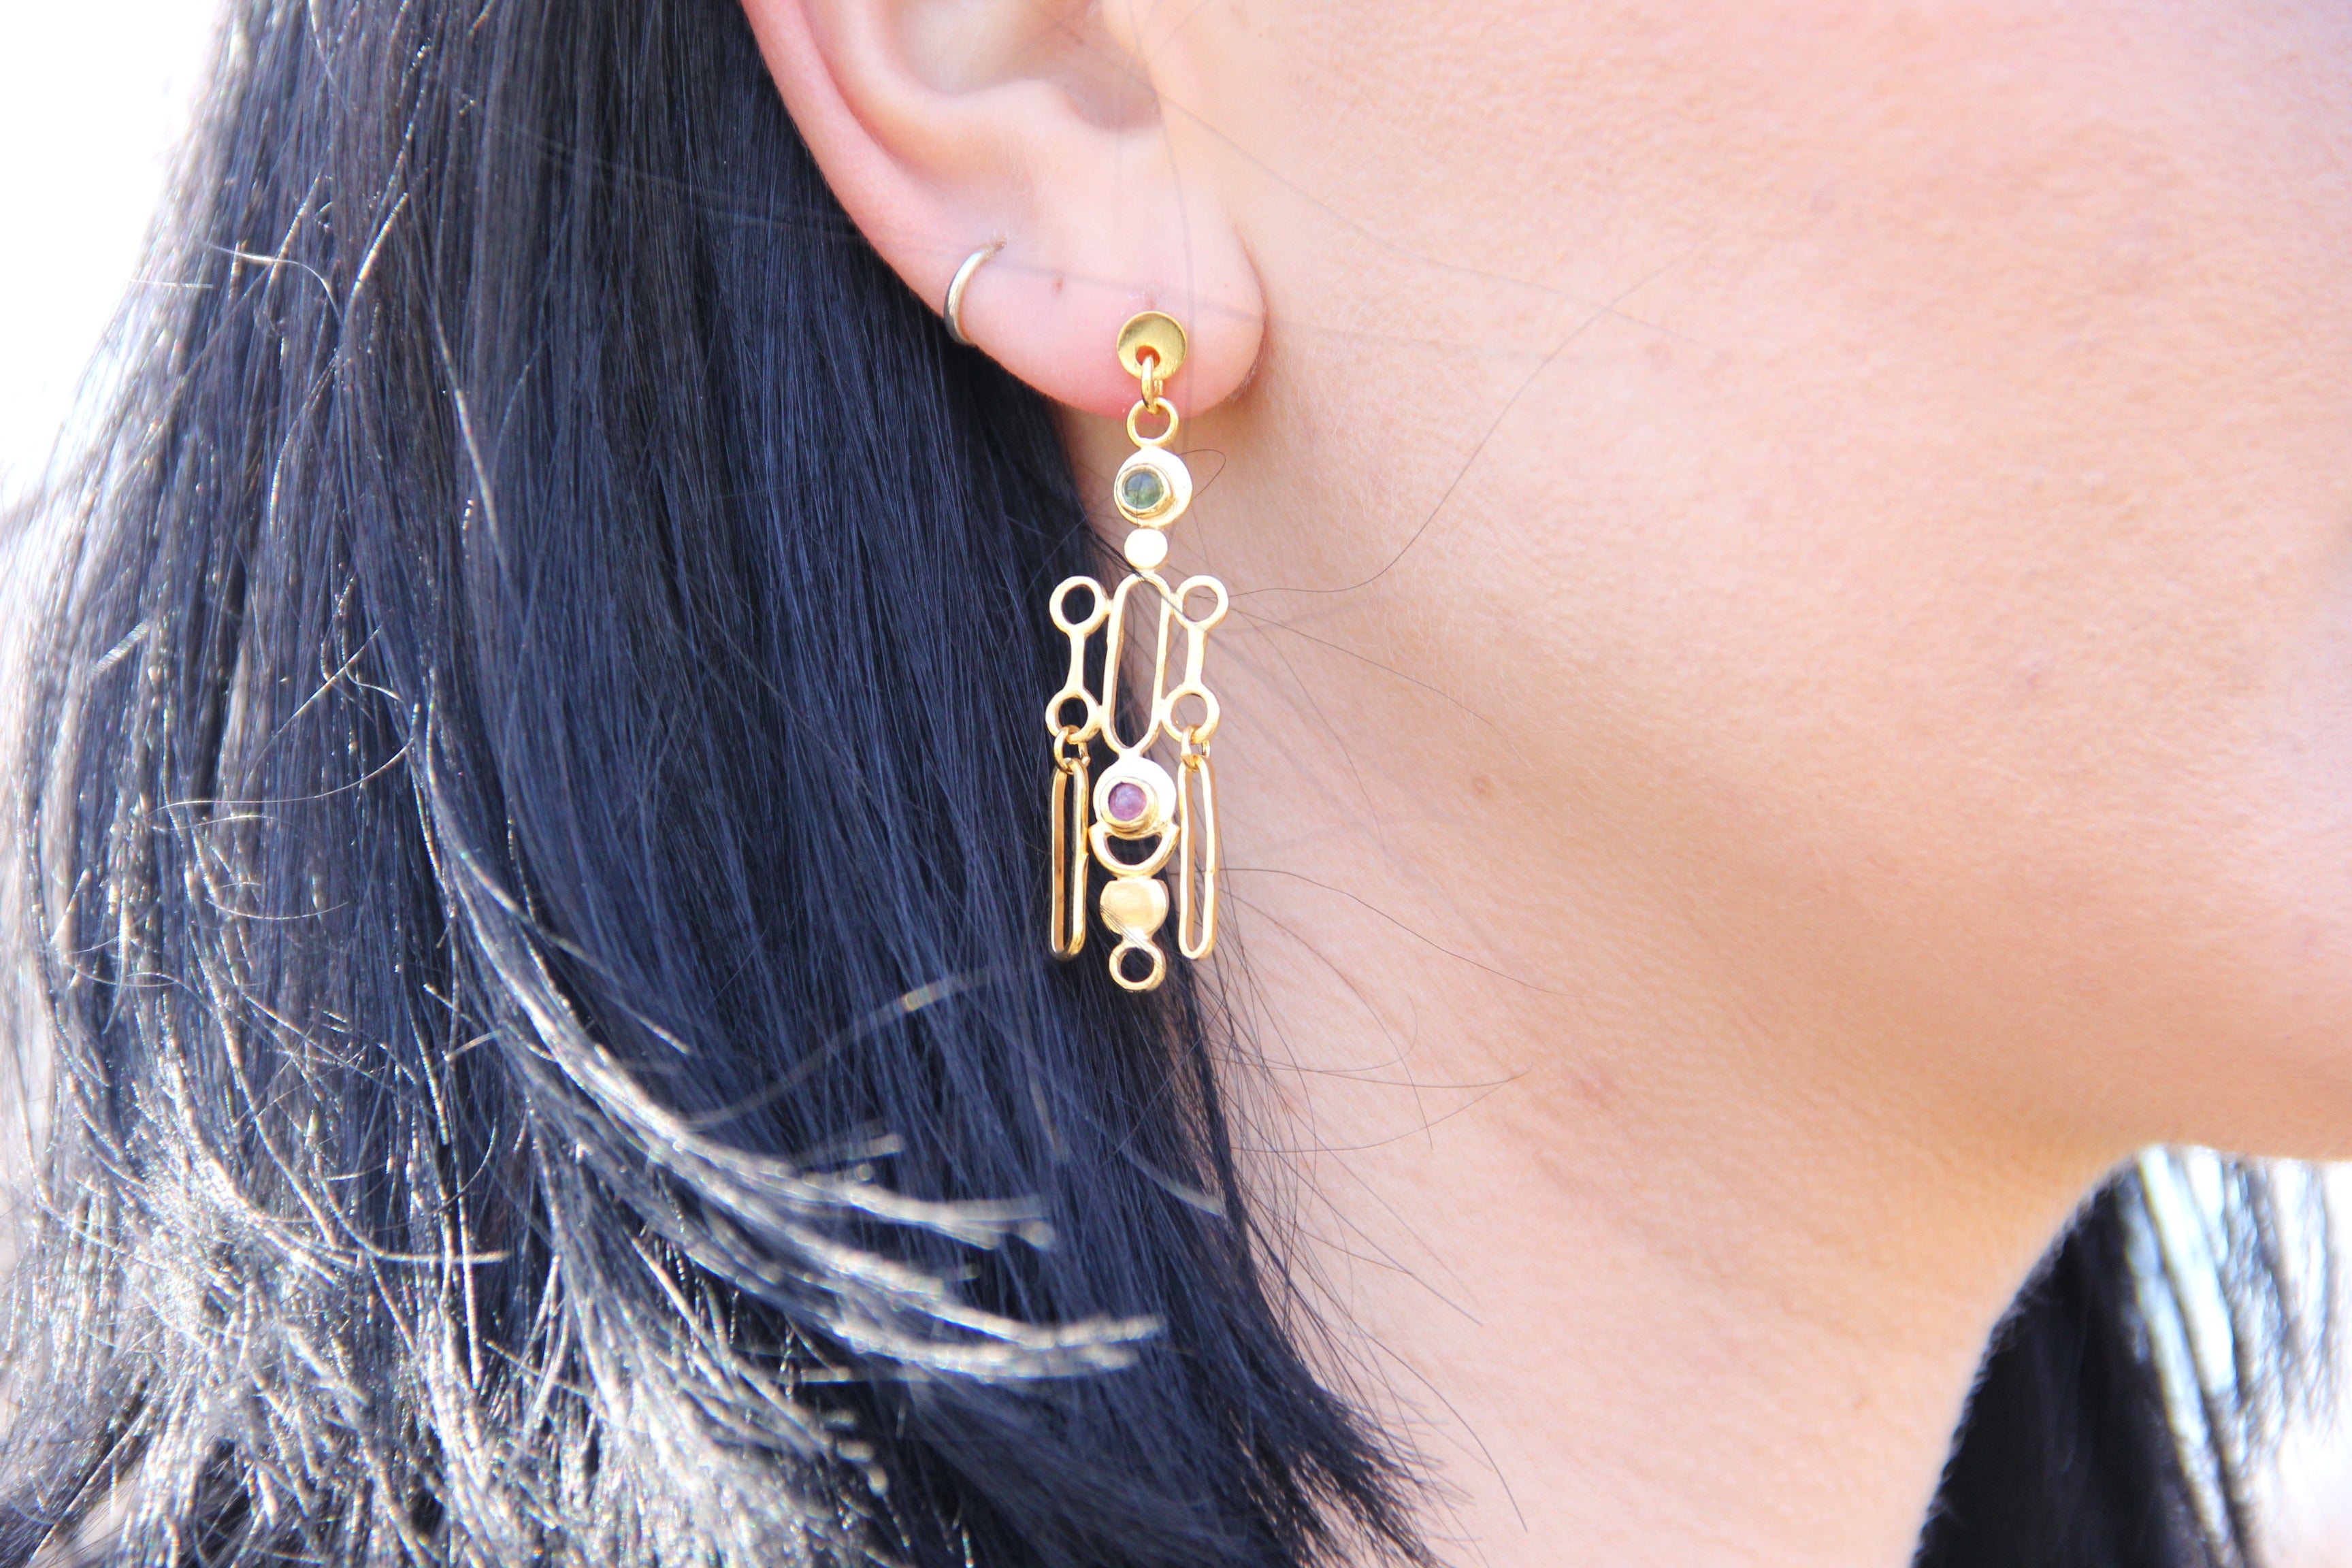 Caledula Earrings